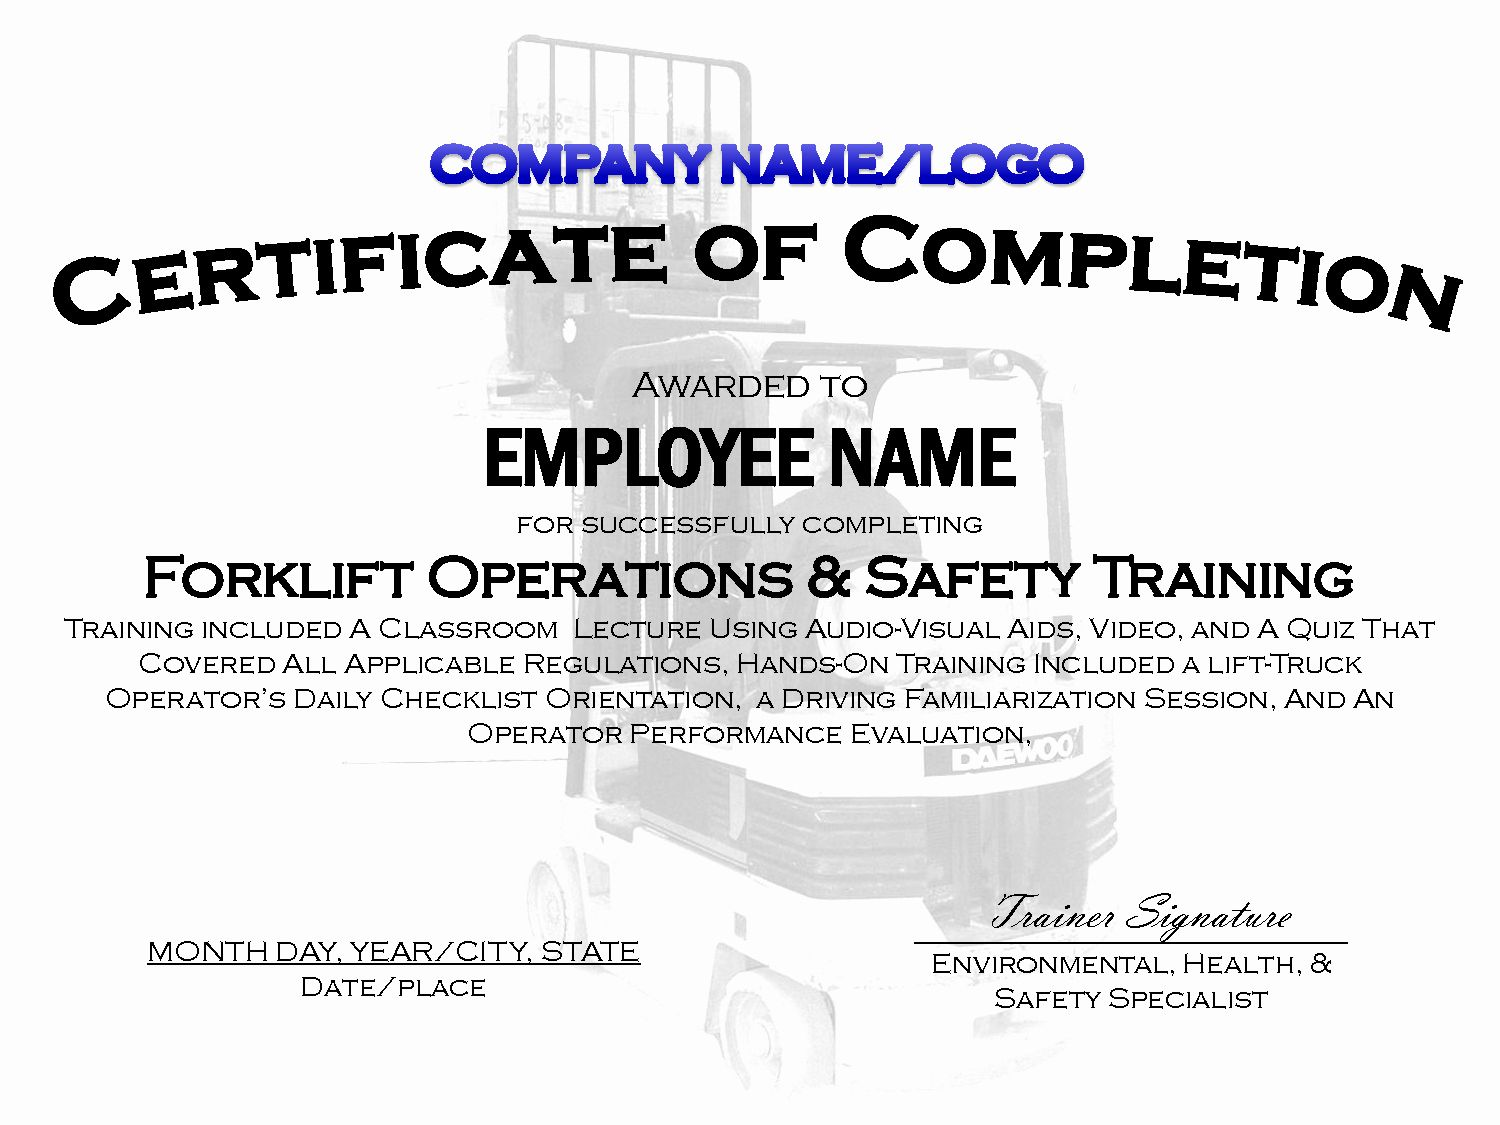 Forklift Training Certificate Template Best Of Best S Of Sample Training Certificate Template Training Certificate Forklift Training Certificate Templates